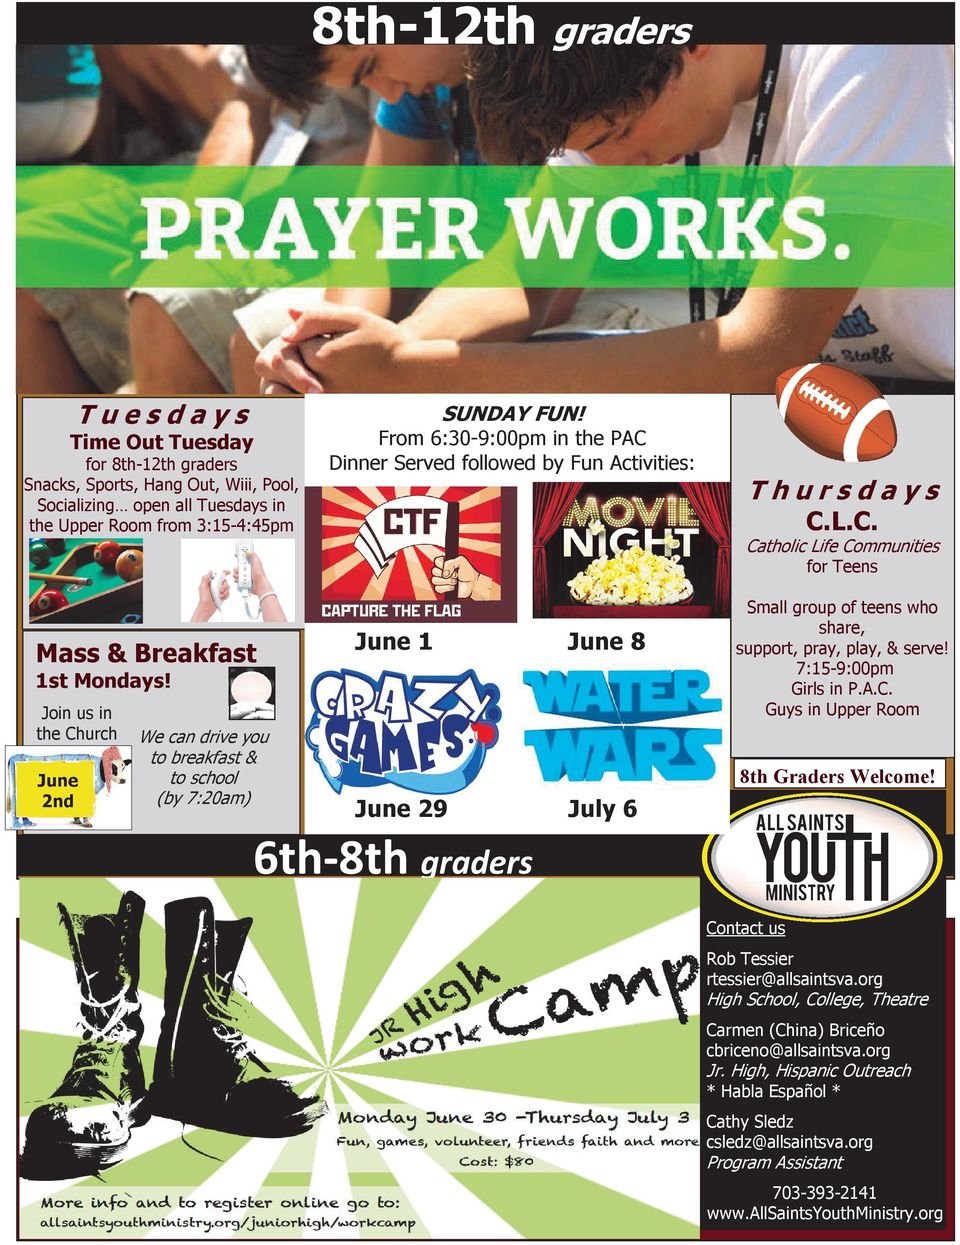 3:15-4:45pm Thursdays C.L.C. Catholic Life Communities for Teens Mass & Breakfast June 1 June 8 1st Mondays!